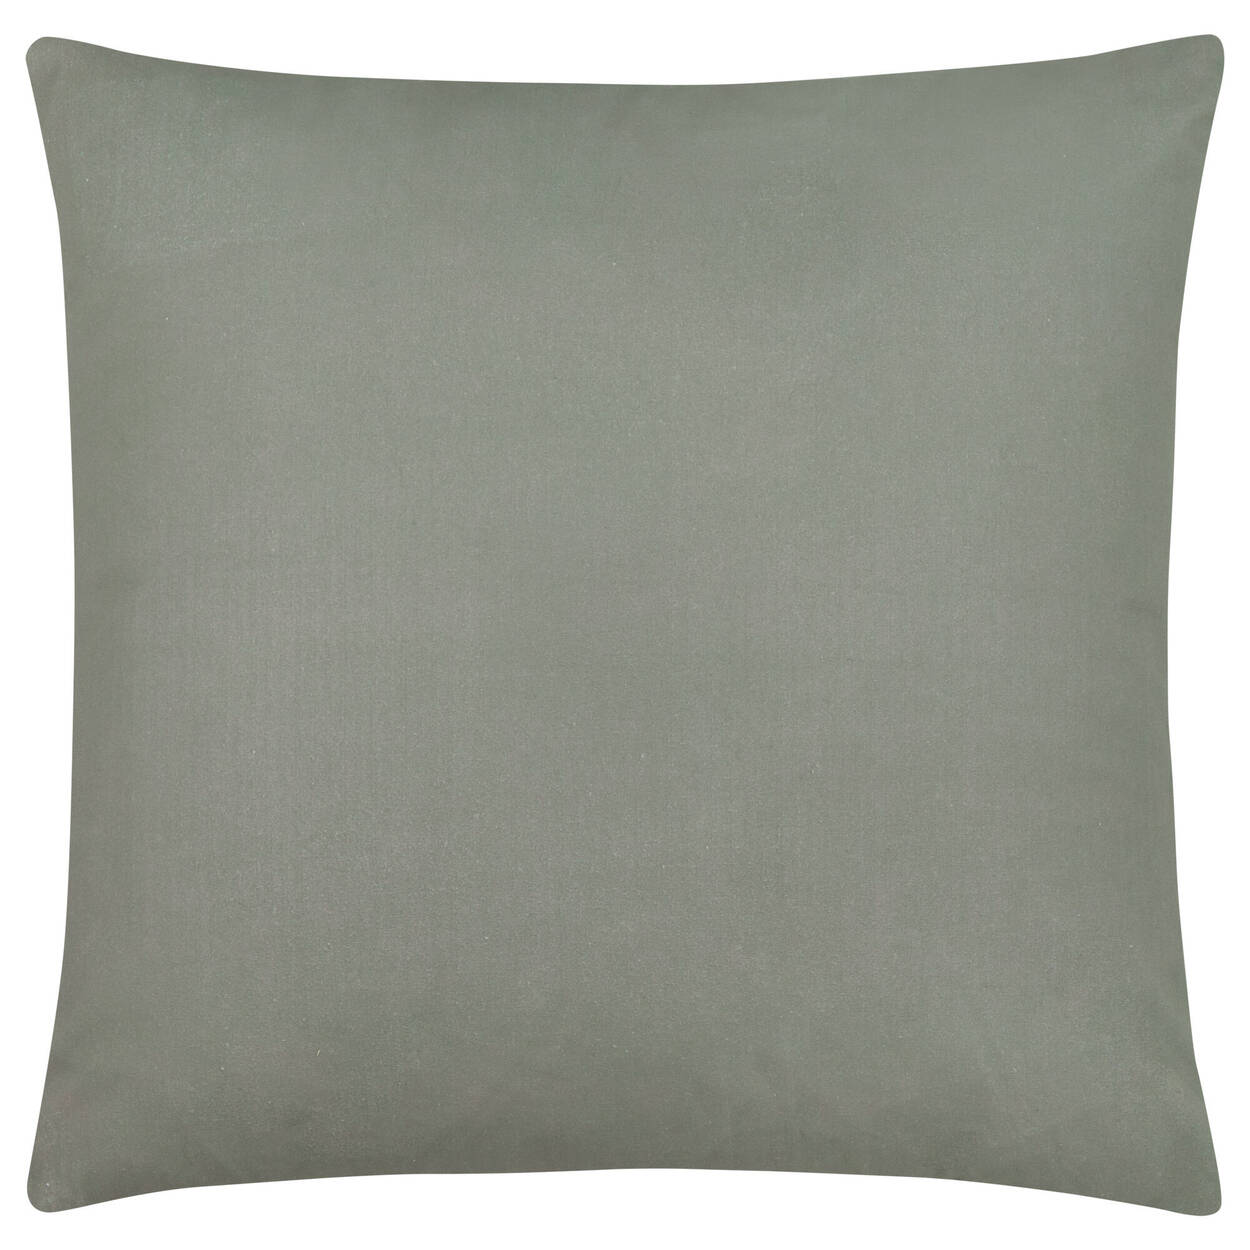 "Delana Marbled Decorative Pillow 19"" X 19"""